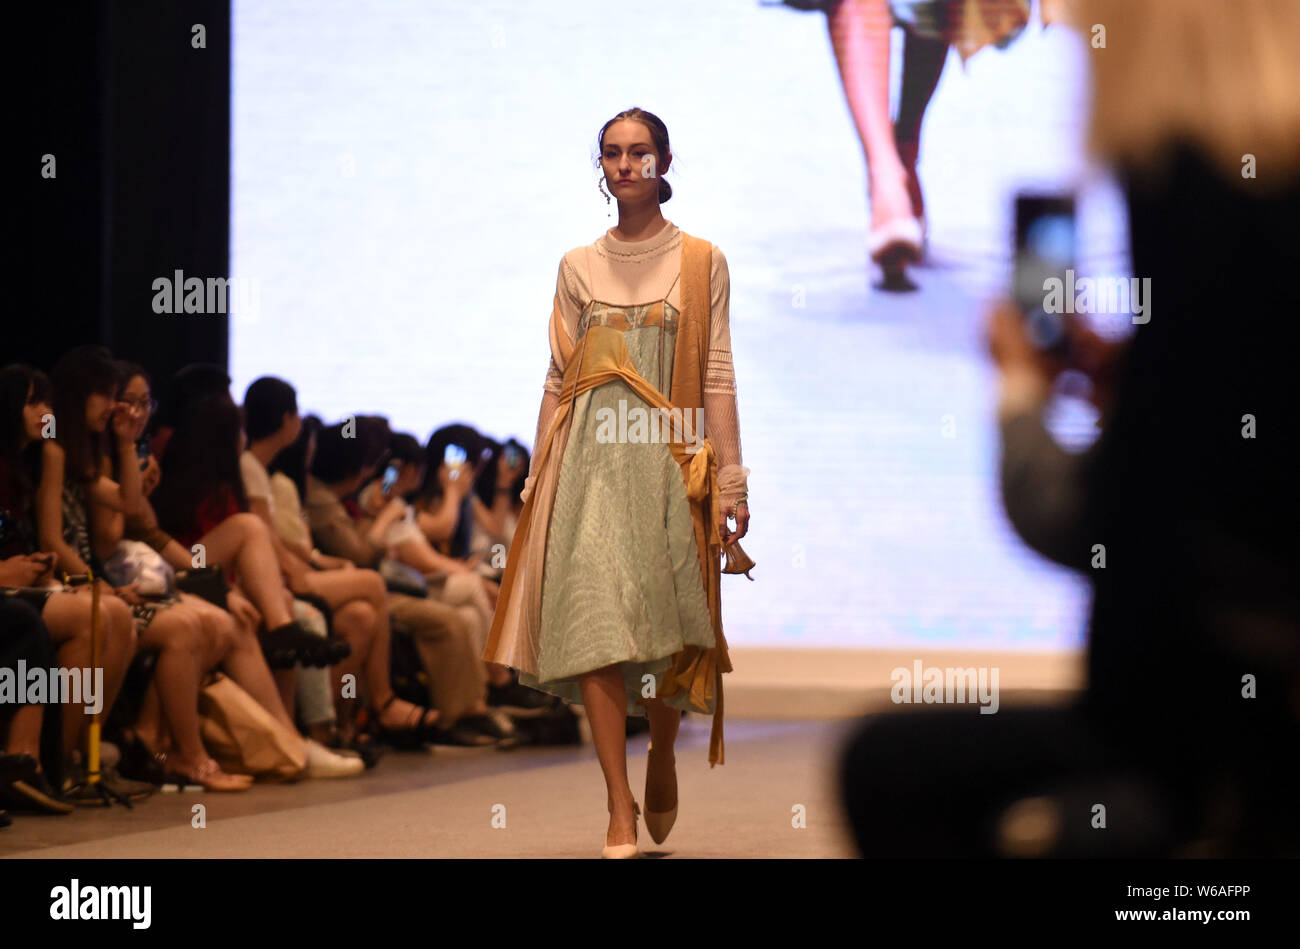 A Model Displays A New Creation By A Graduate During A Fashion Show For Graduation Design Works At The Campus Of Hong Kong Polytechnic University Pol Stock Photo 262075374 Alamy